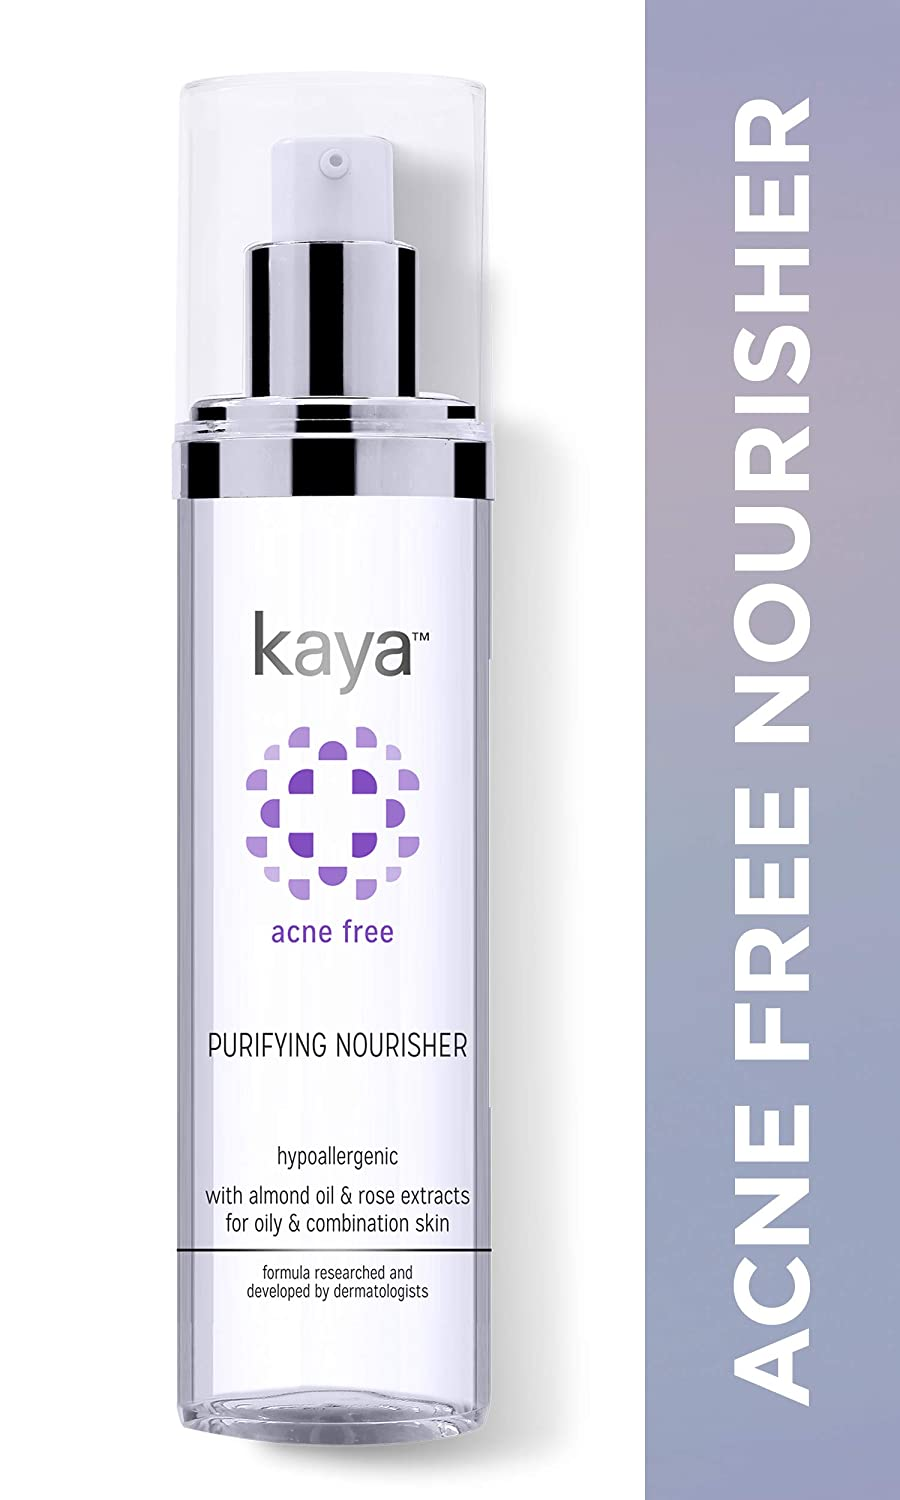 Kaya Acne Free Purifying Nourisher